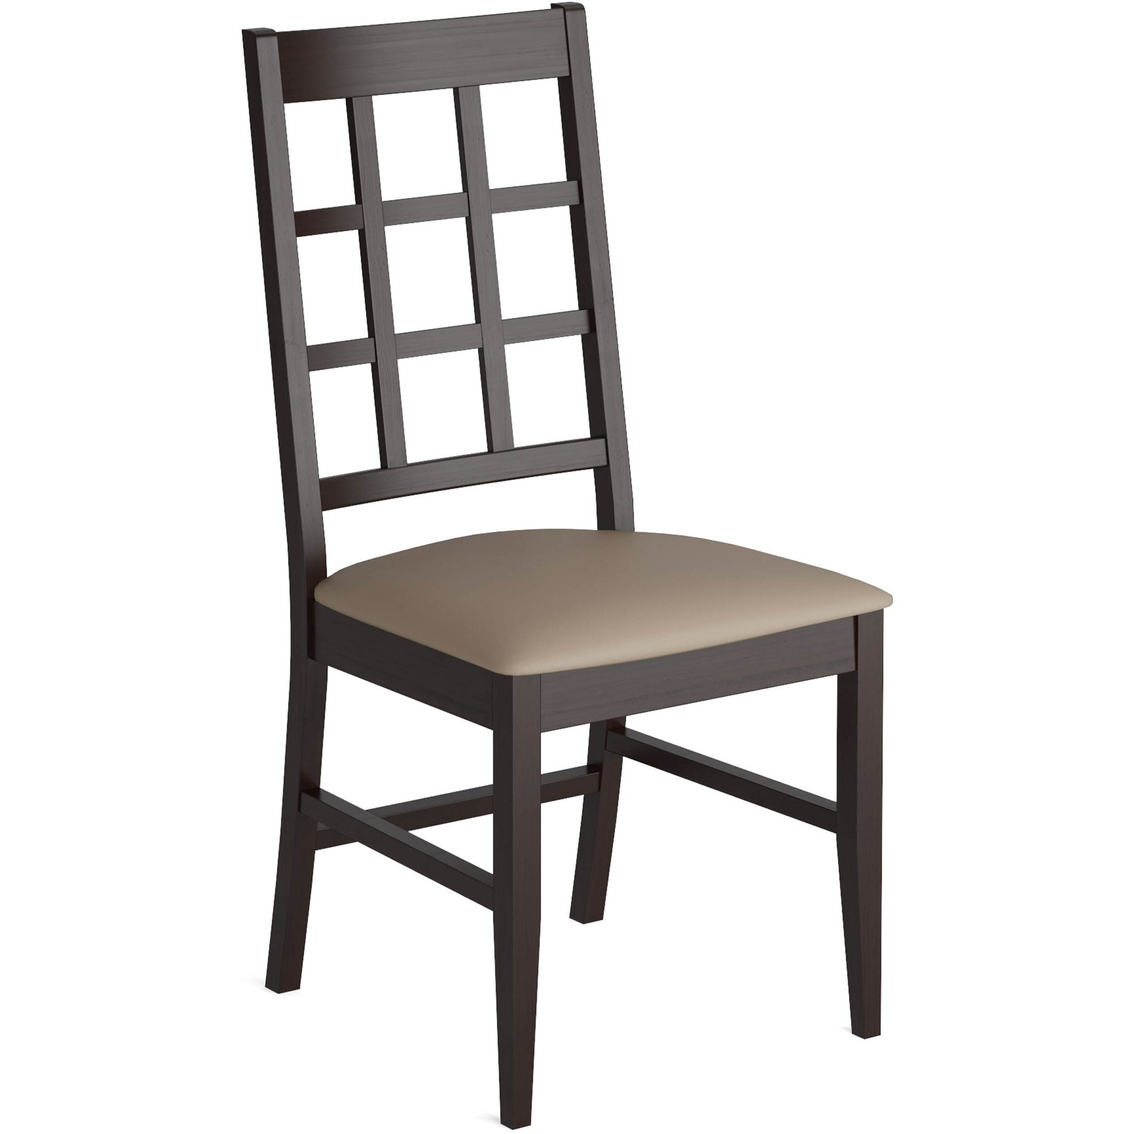 Most Current Corliving Atwood Dining Chairs With Leatherette Seat 2 Pk Inside Atwood Transitional Square Dining Tables (View 22 of 30)